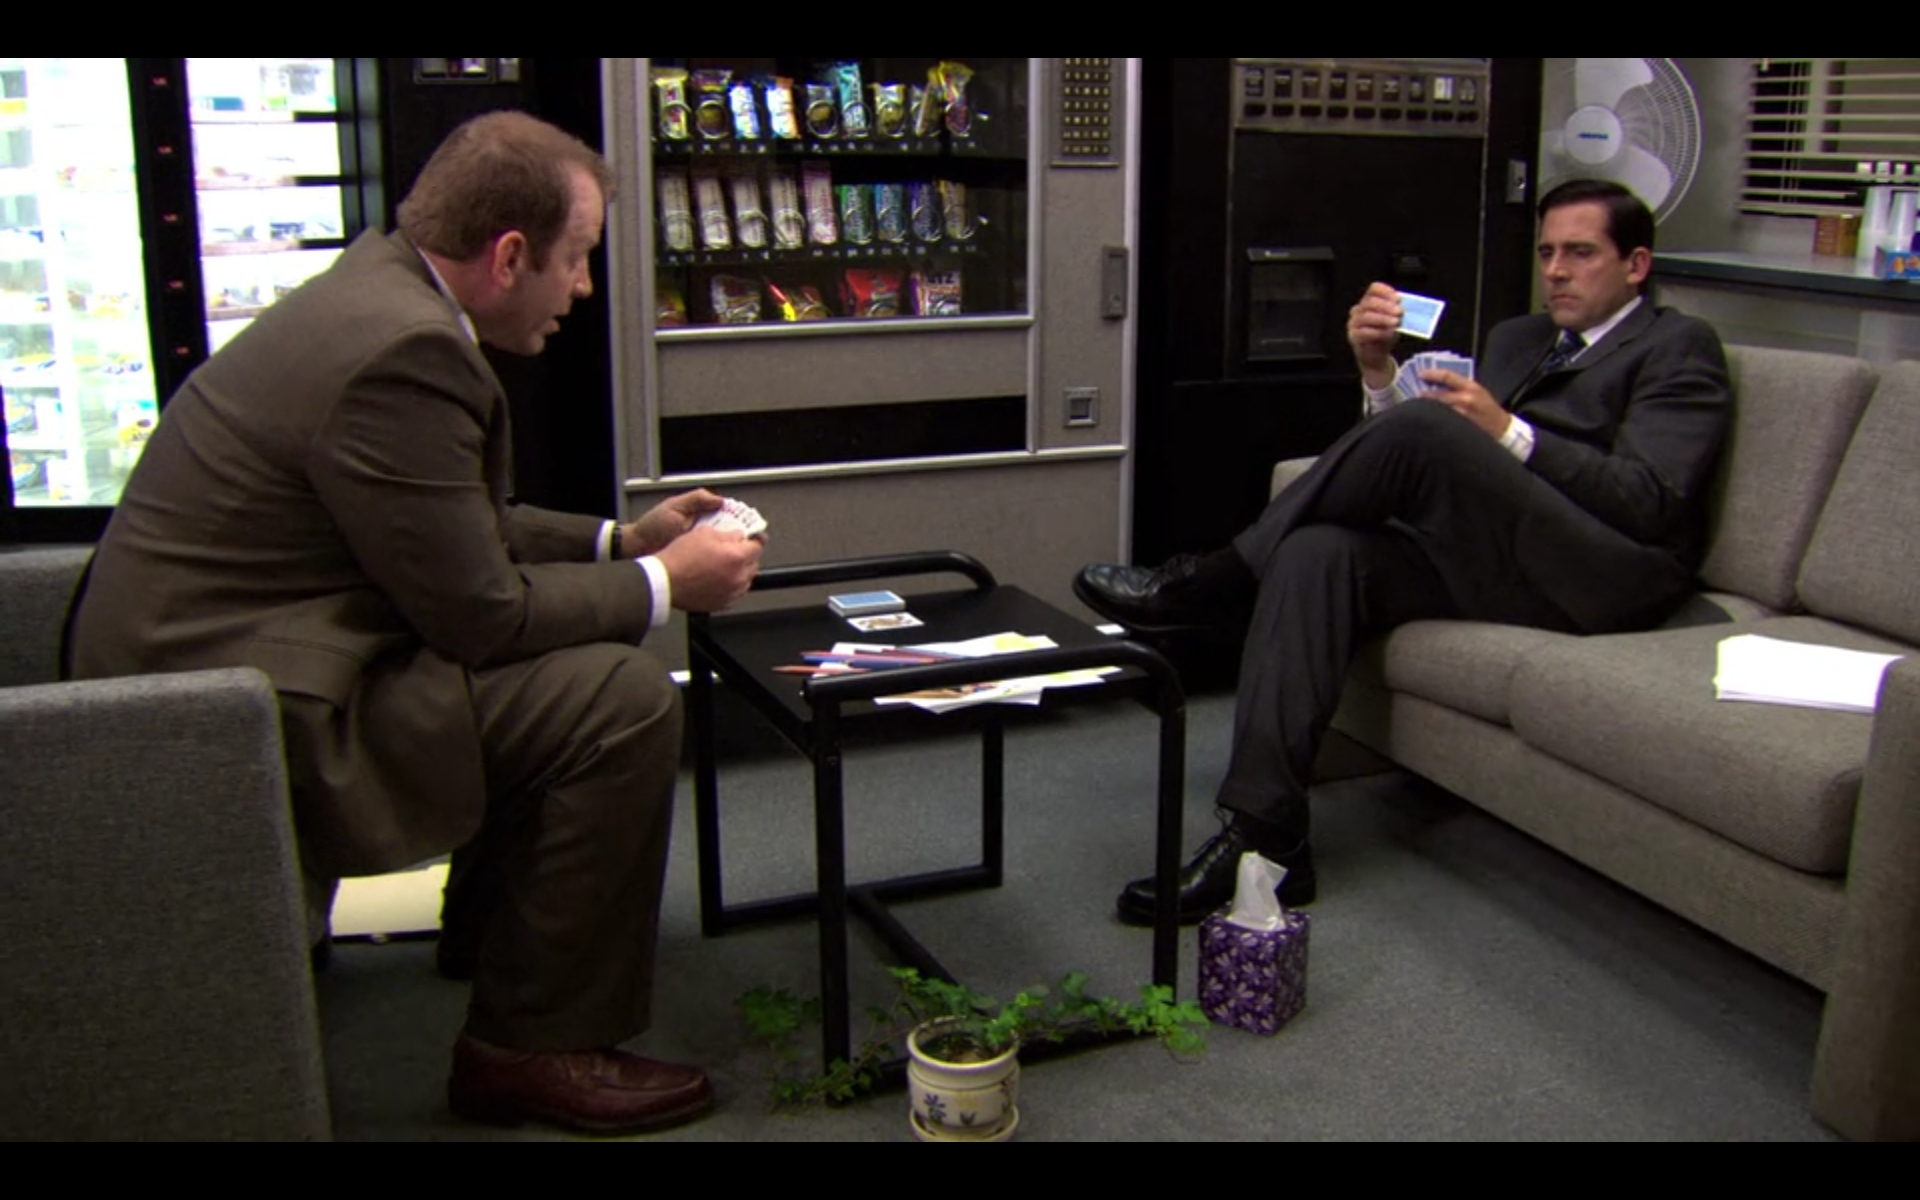 Michael and Toby's Counseling Session